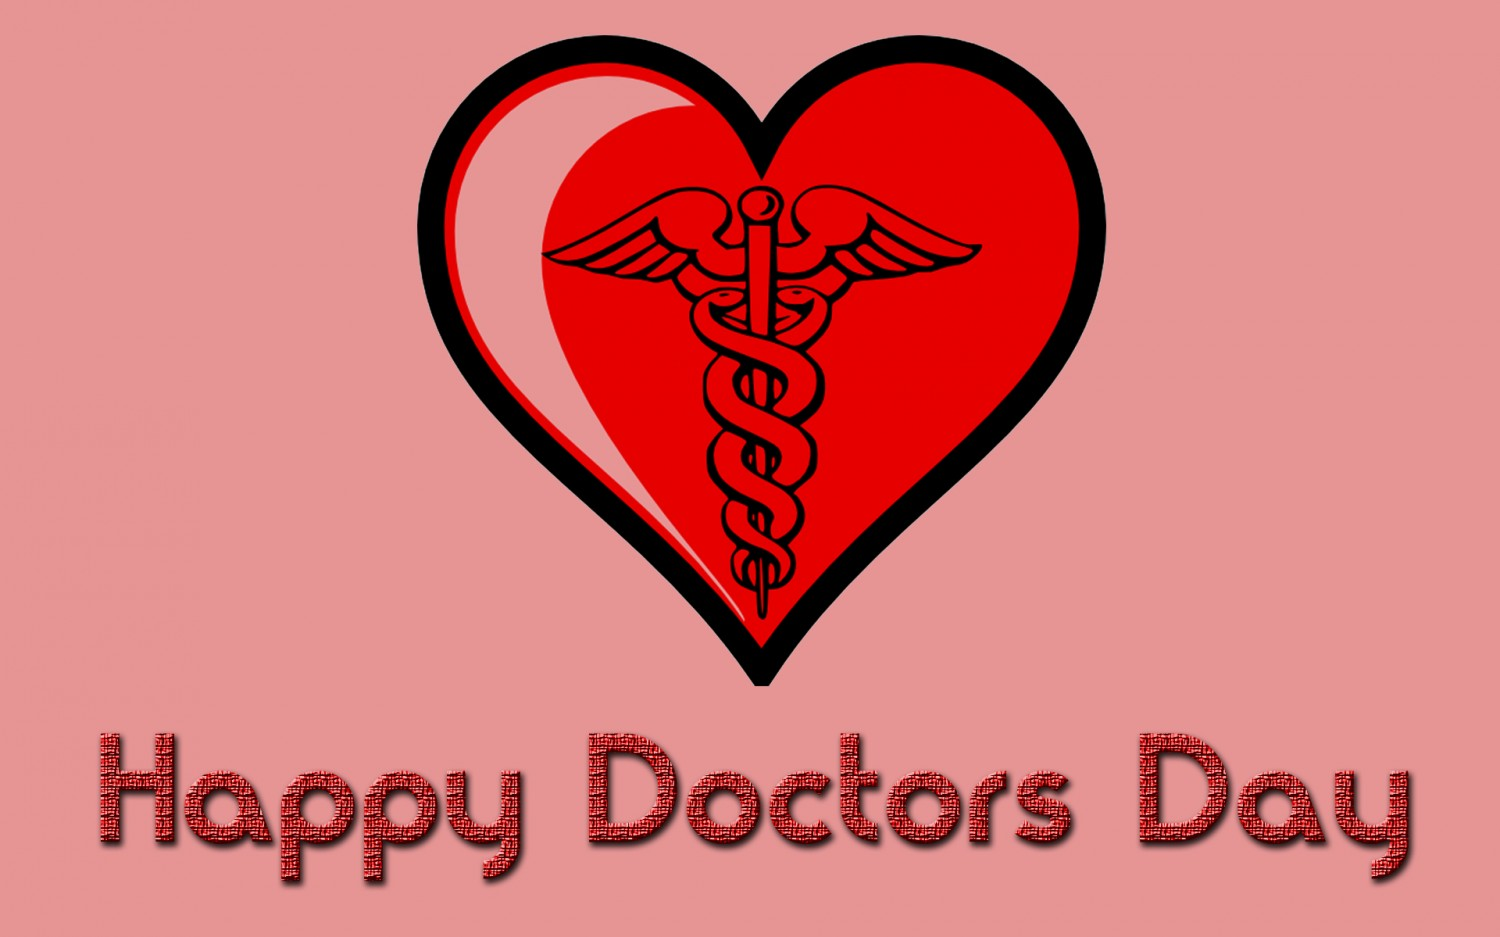 Doctors Day 2018 Wallpaper free download